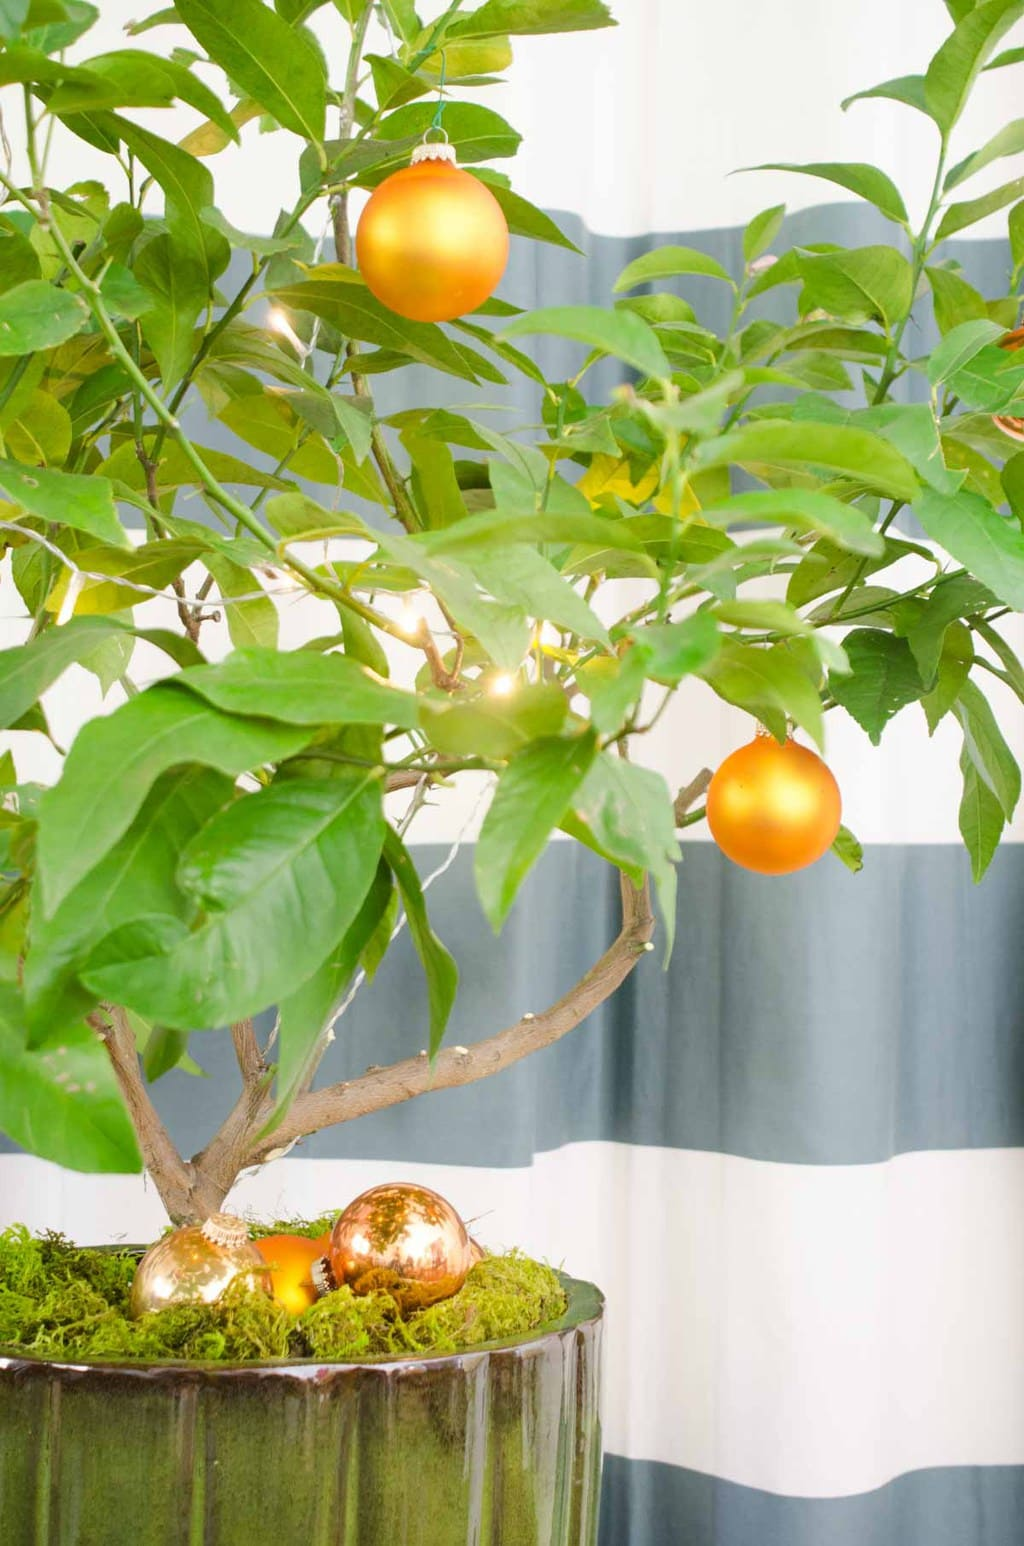 Citrus Christmas tree, holiday decor ideas on @thouswellblog